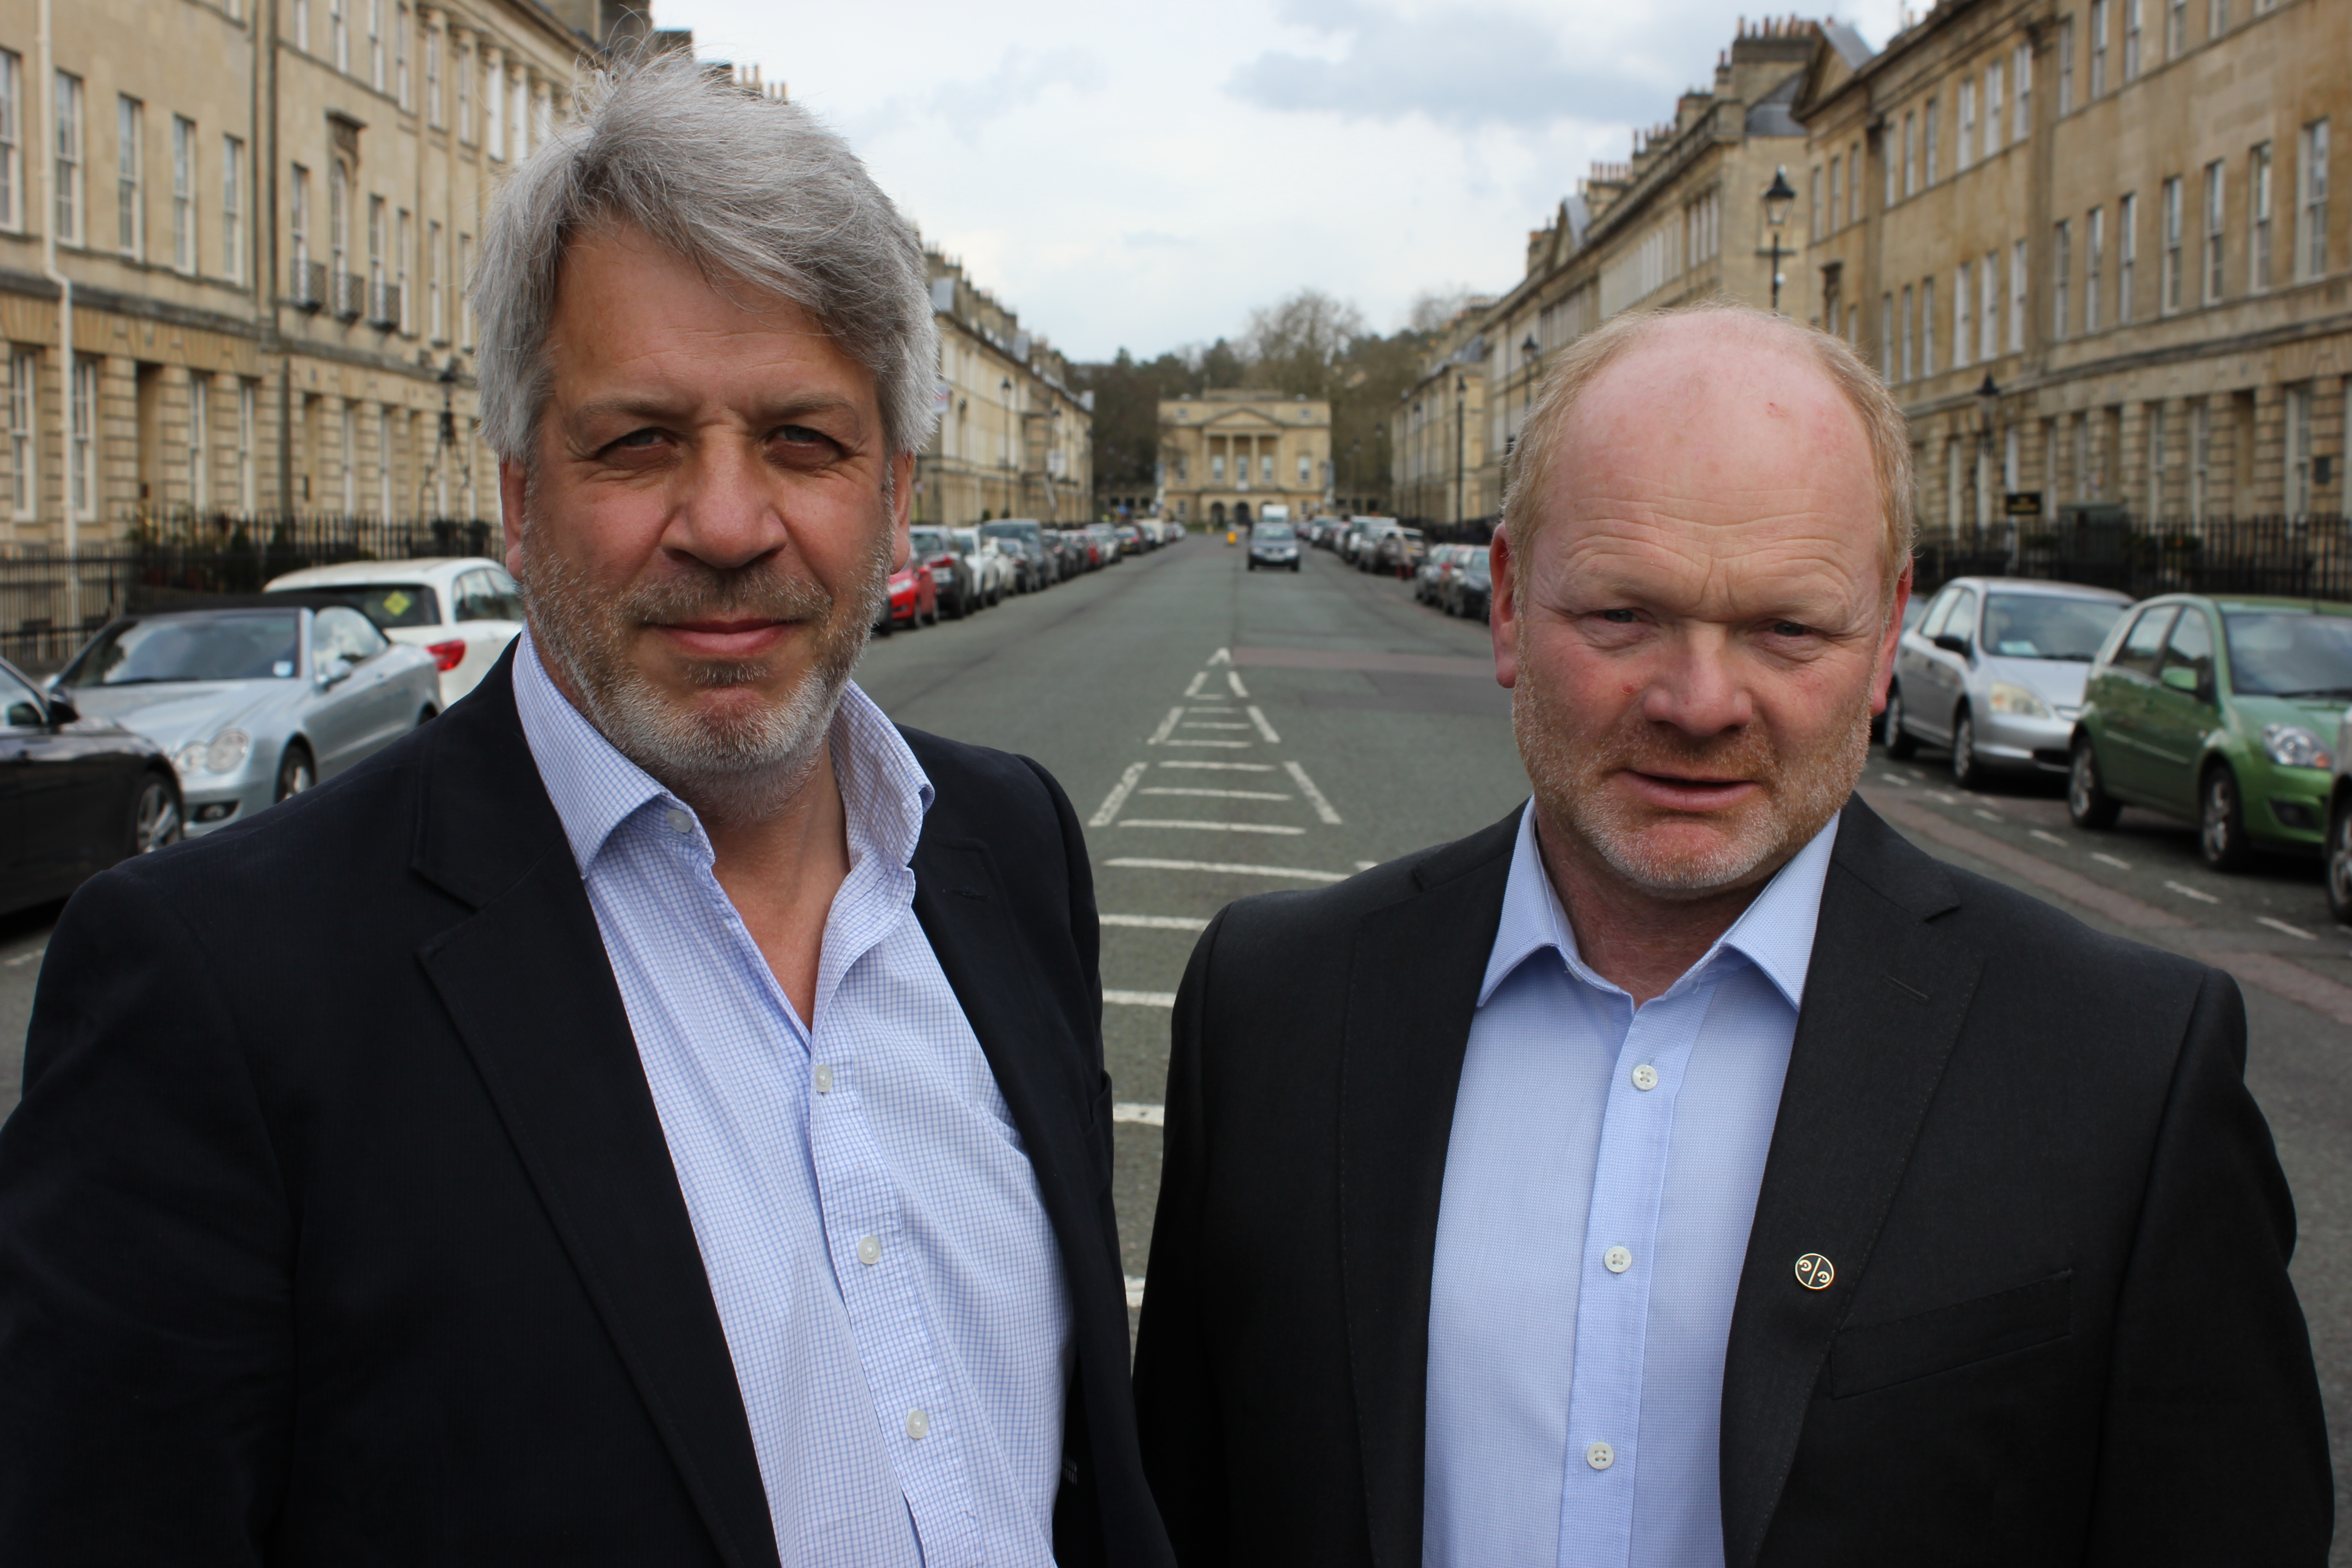 Latest success for fledgling firm on a mission to transform Bath's unloved buildings